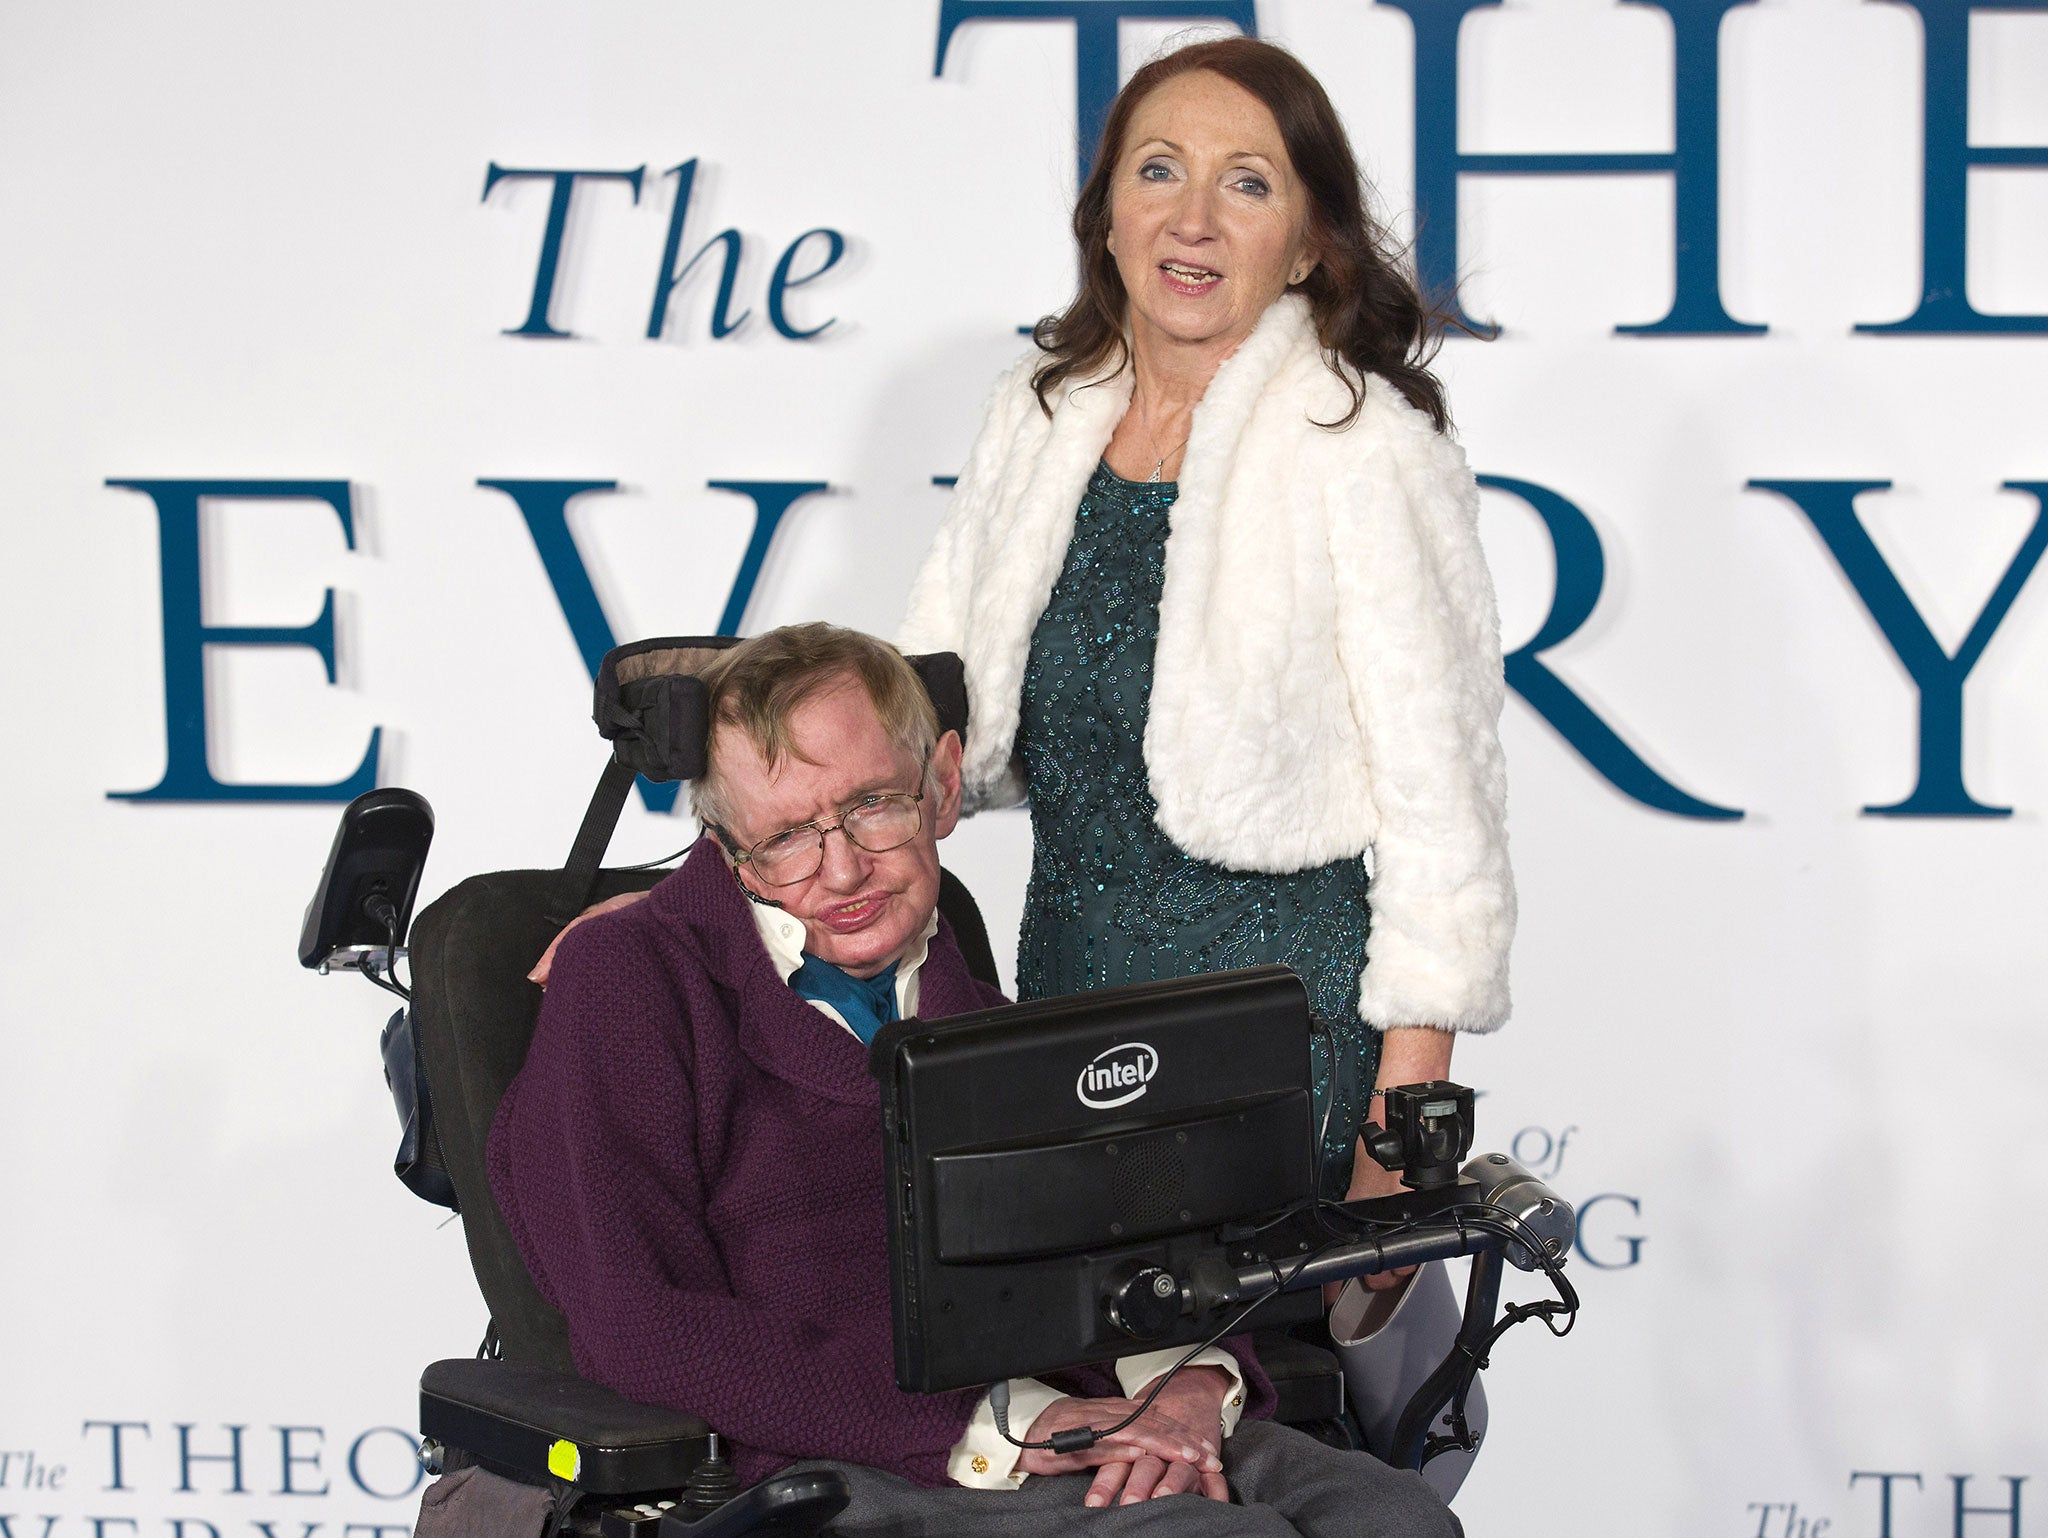 Jane Wilde stephen hawking marriage